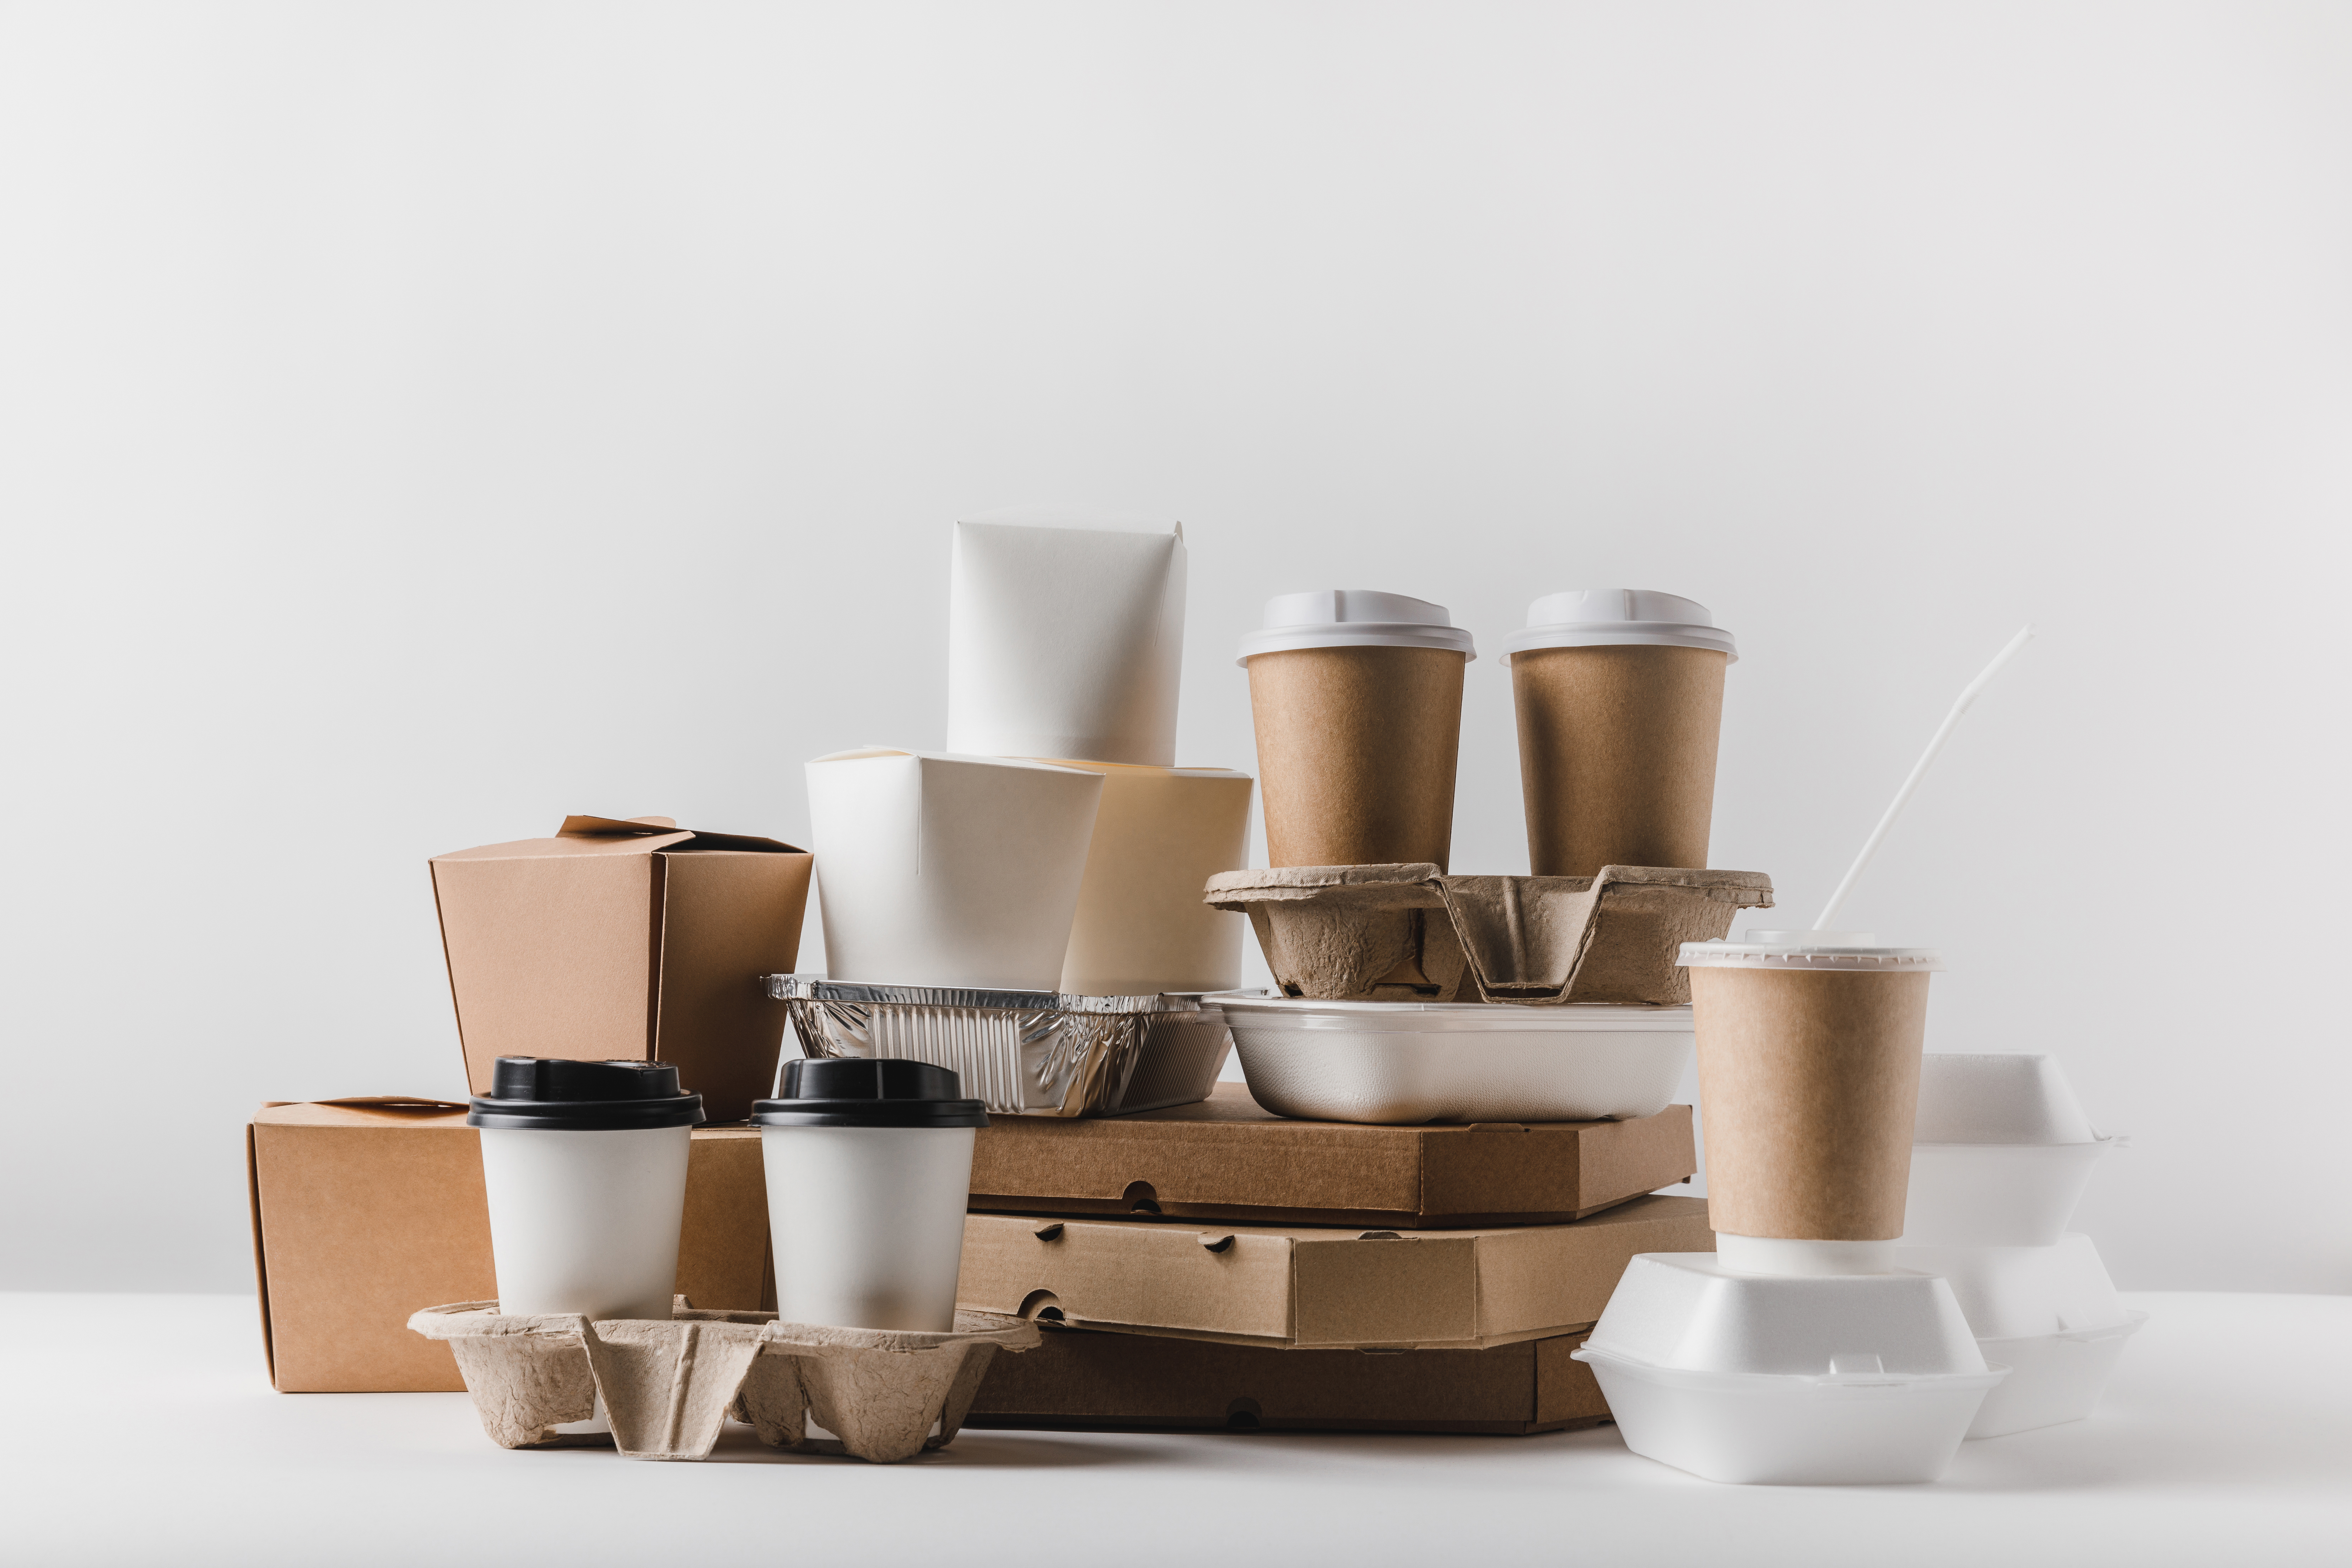 Sustainable and safe food packaging with biodegradable water